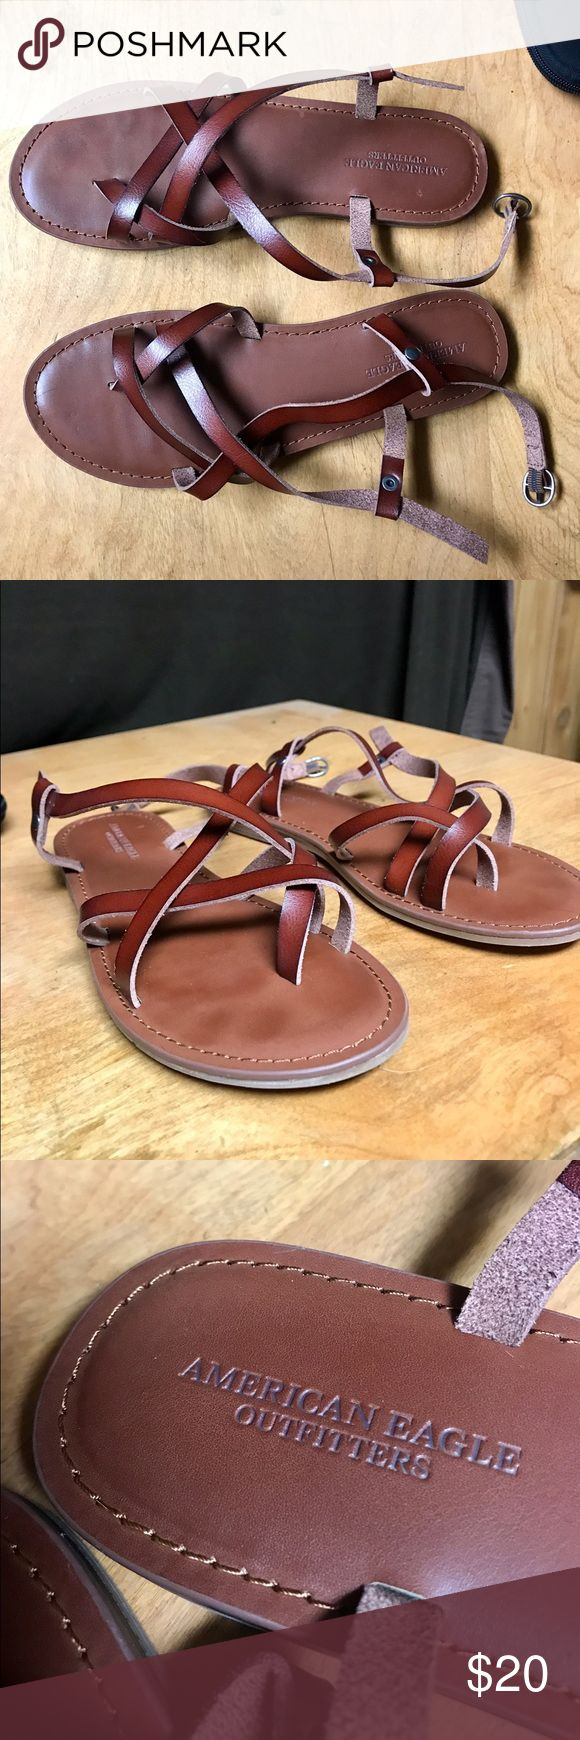 American Eagle Sandals Brown leather sandals by American Eagle. Size 8. Worn for an hour. American Eagle Outfitters Shoes Sandals